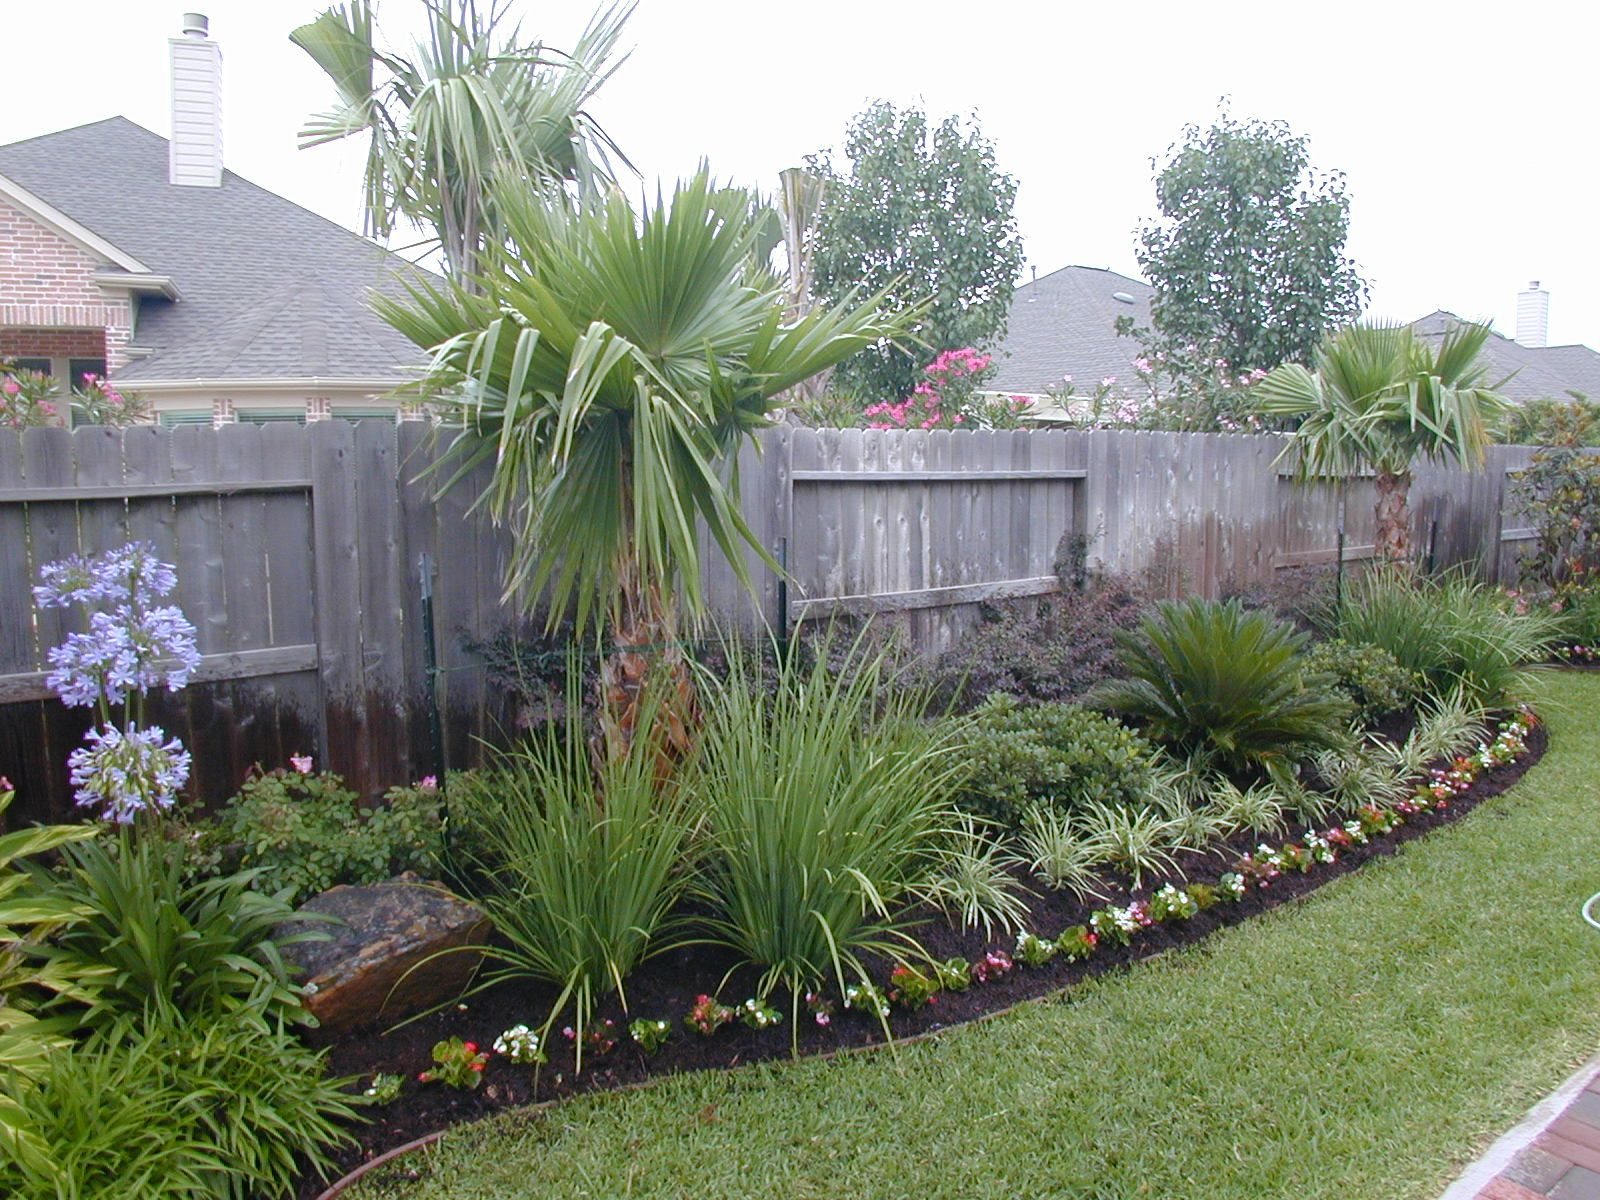 Landscape Design Landscaping Landscaping Houston Landscape Houston Paver Patios Backyard Landscaping Designs Garden Landscape Design Home Landscaping